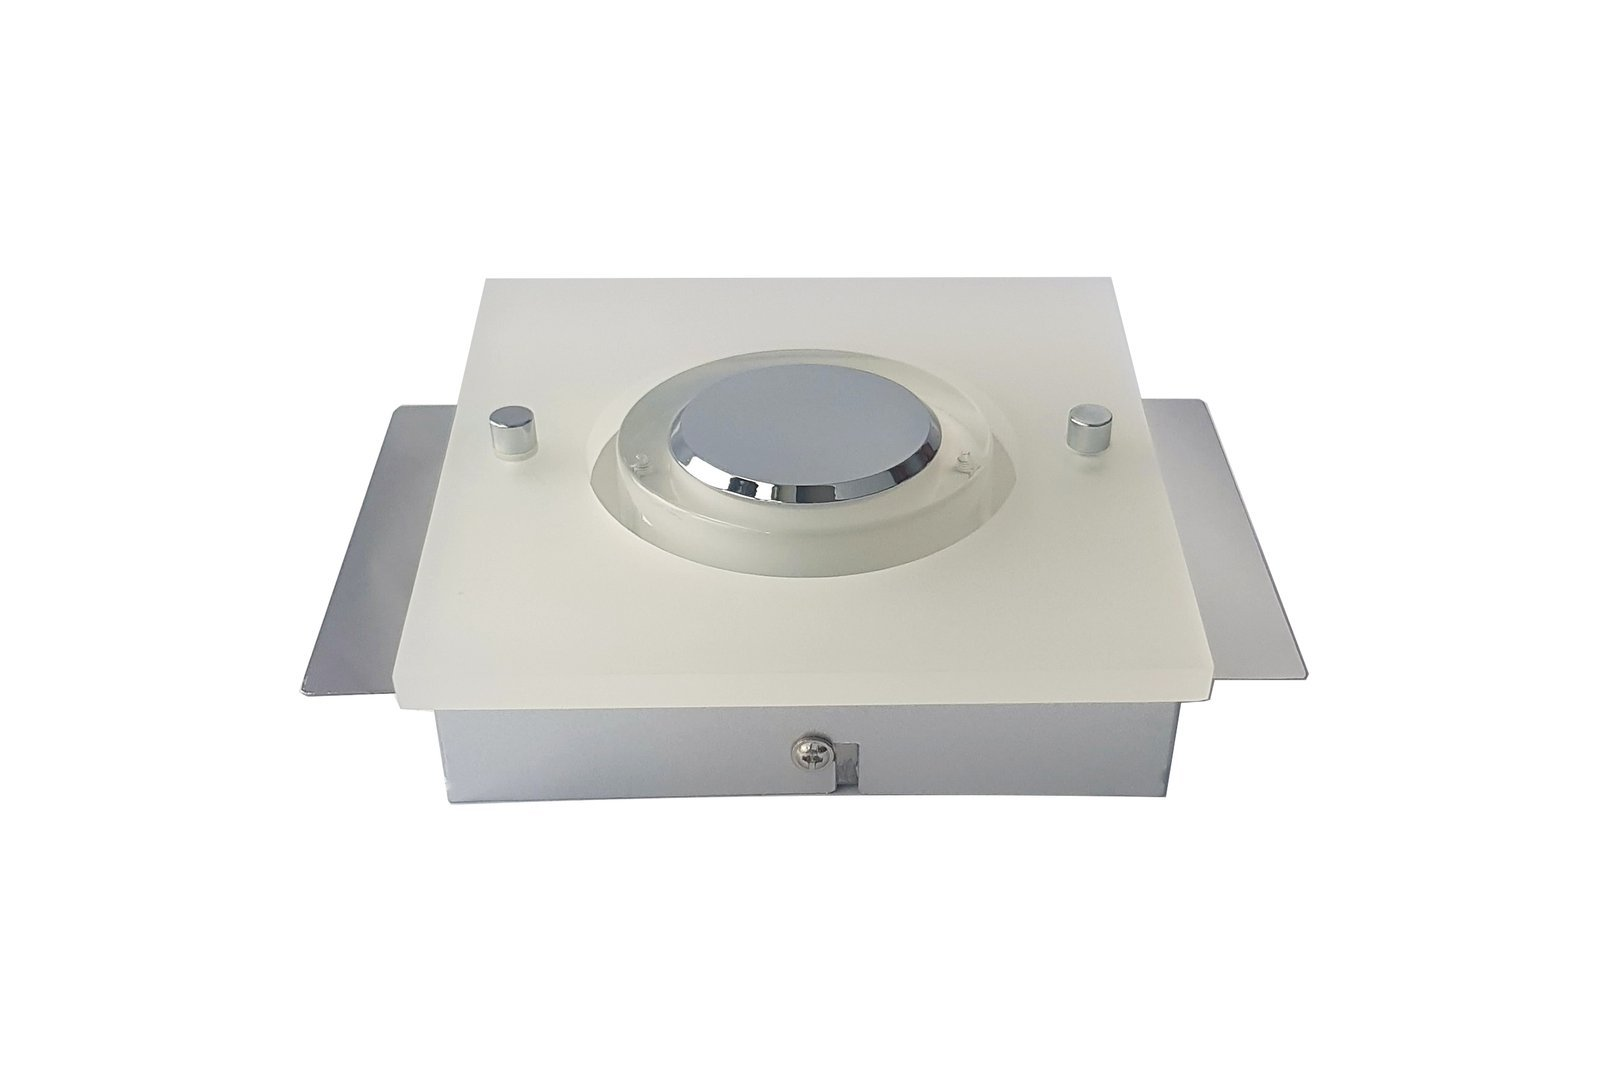 Wall-ceiling lamp Briloner Fare 3534-018 5W LED